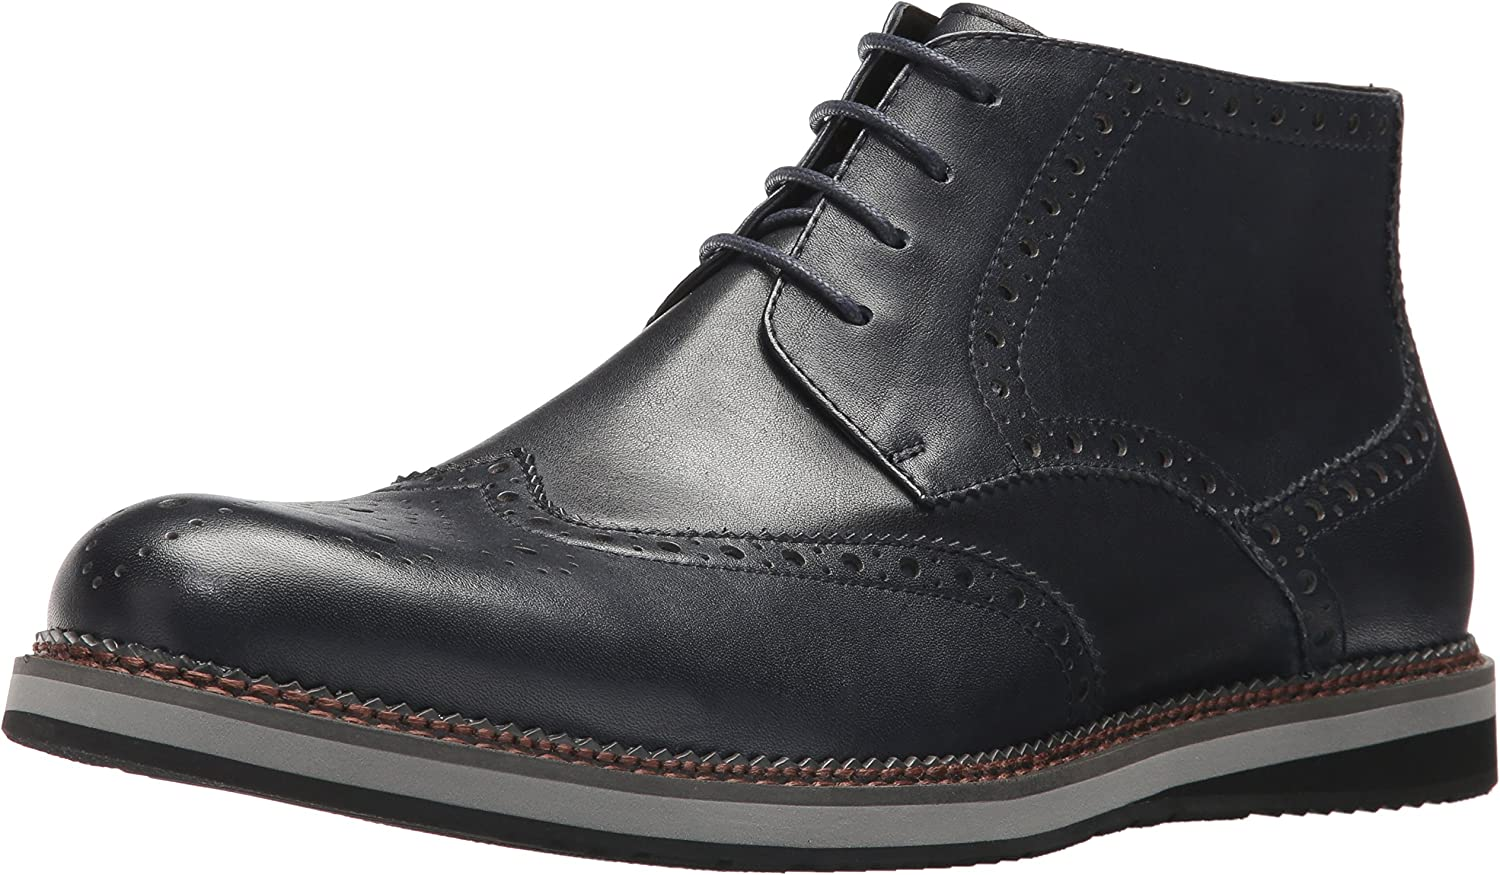 English Laundry Men's Ascot Chukka Boot